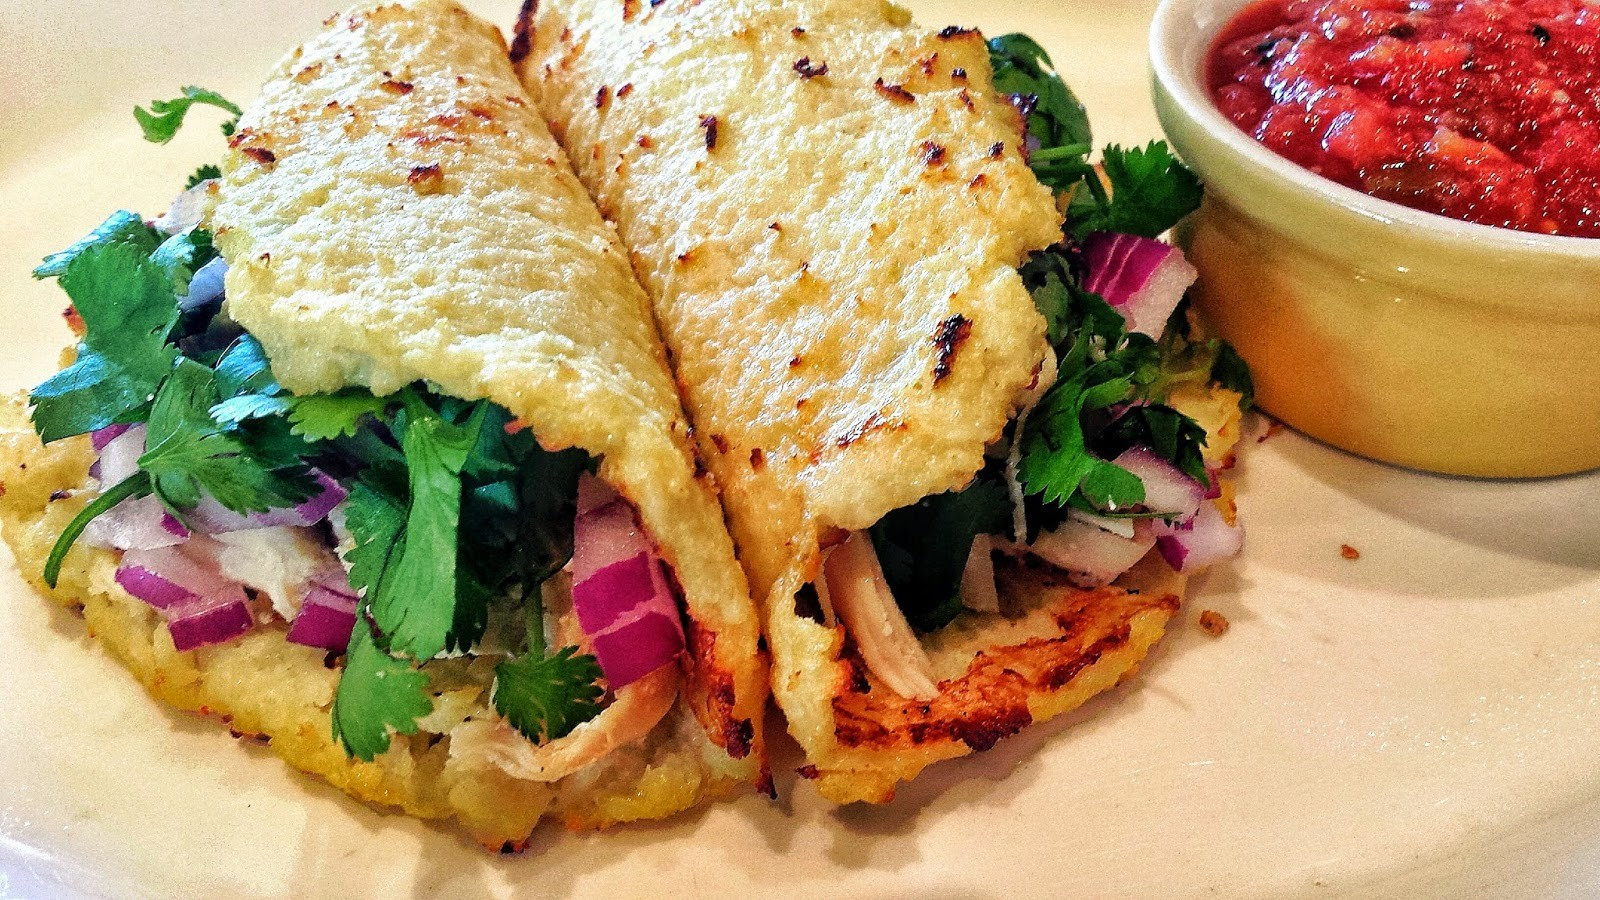 Healthy Low Carb High Protein Recipes  Healthy Tacos Recipe Low Carb High Protein By buffdudes